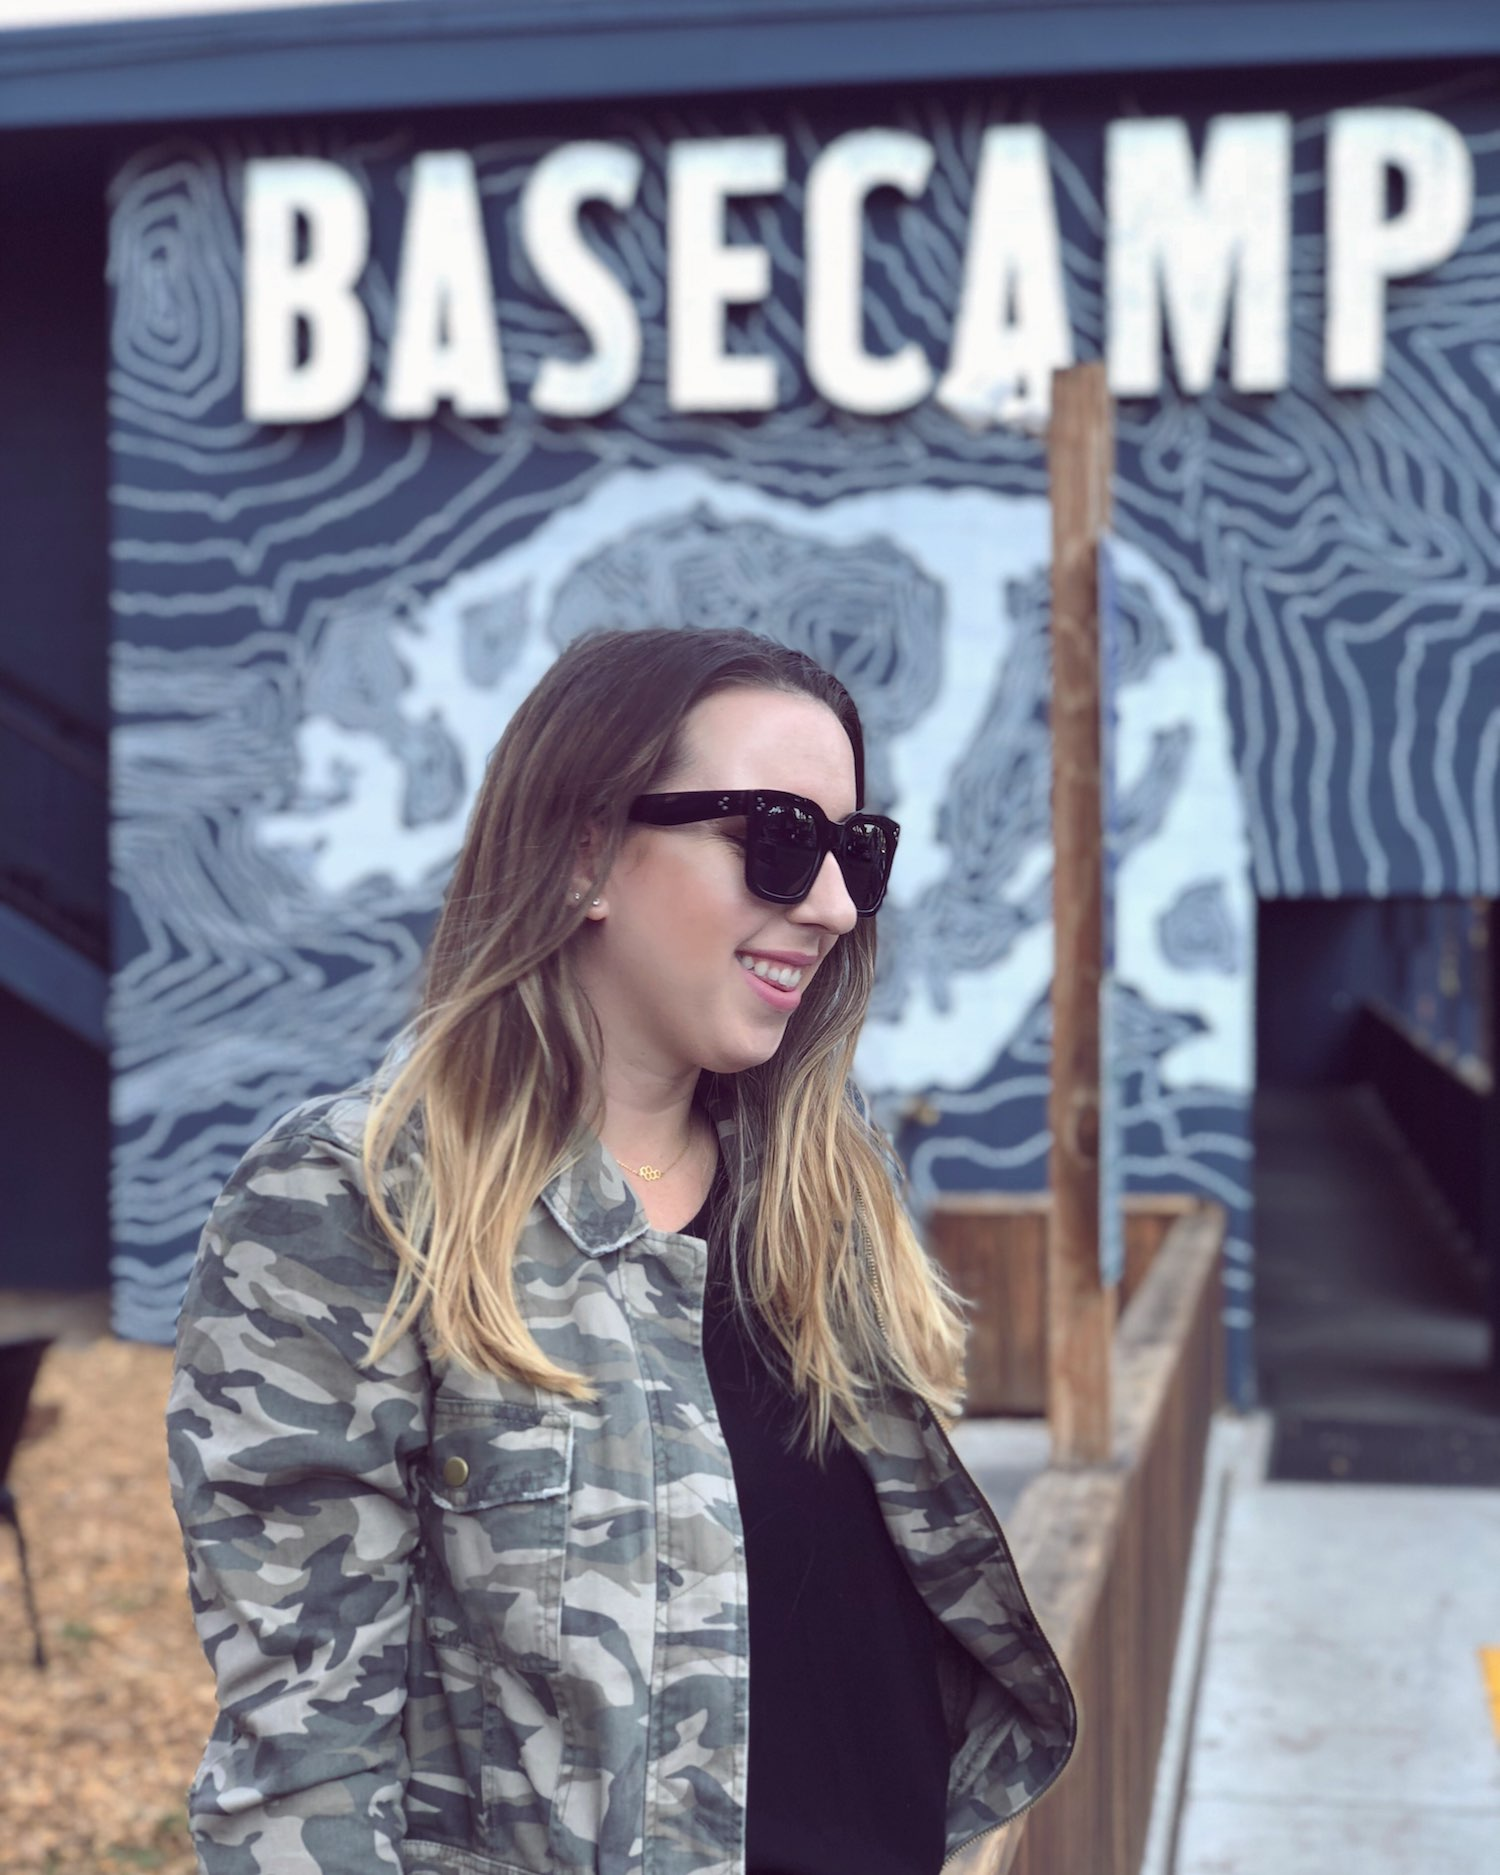 South Lake Tahoe - Basecamp Hotel